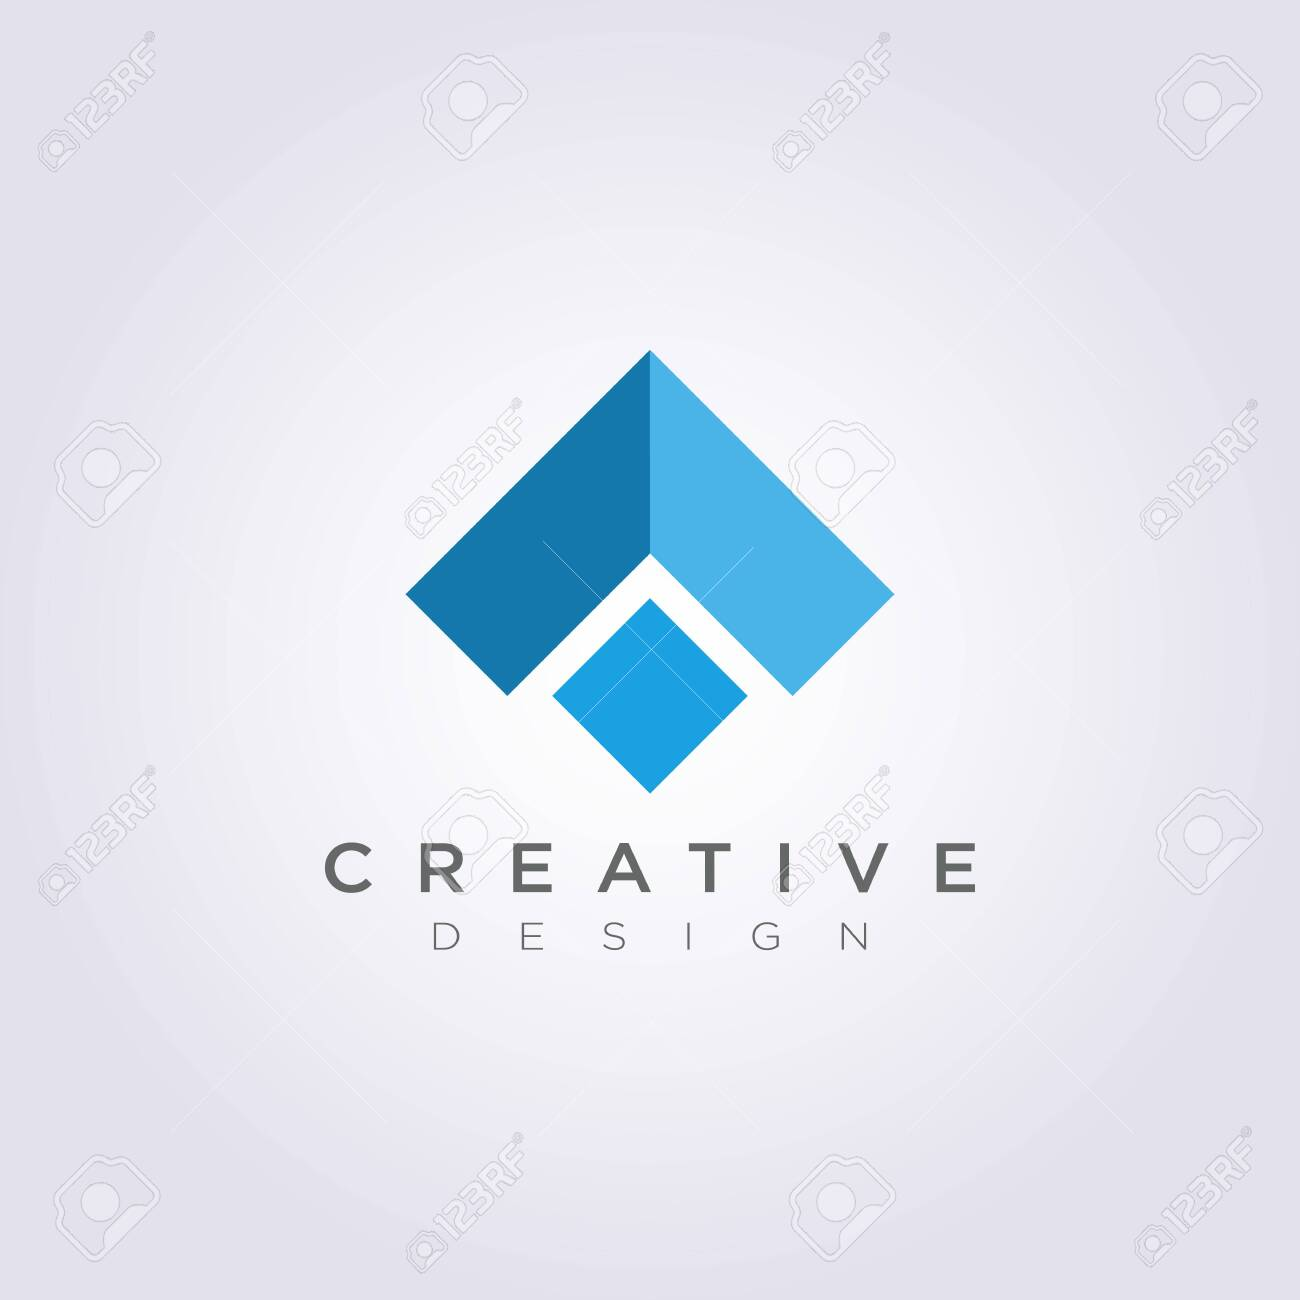 Roof House Abstract Vector Illustration Design Clipart Symbol Royalty Free Cliparts Vectors And Stock Illustration Image 126034126